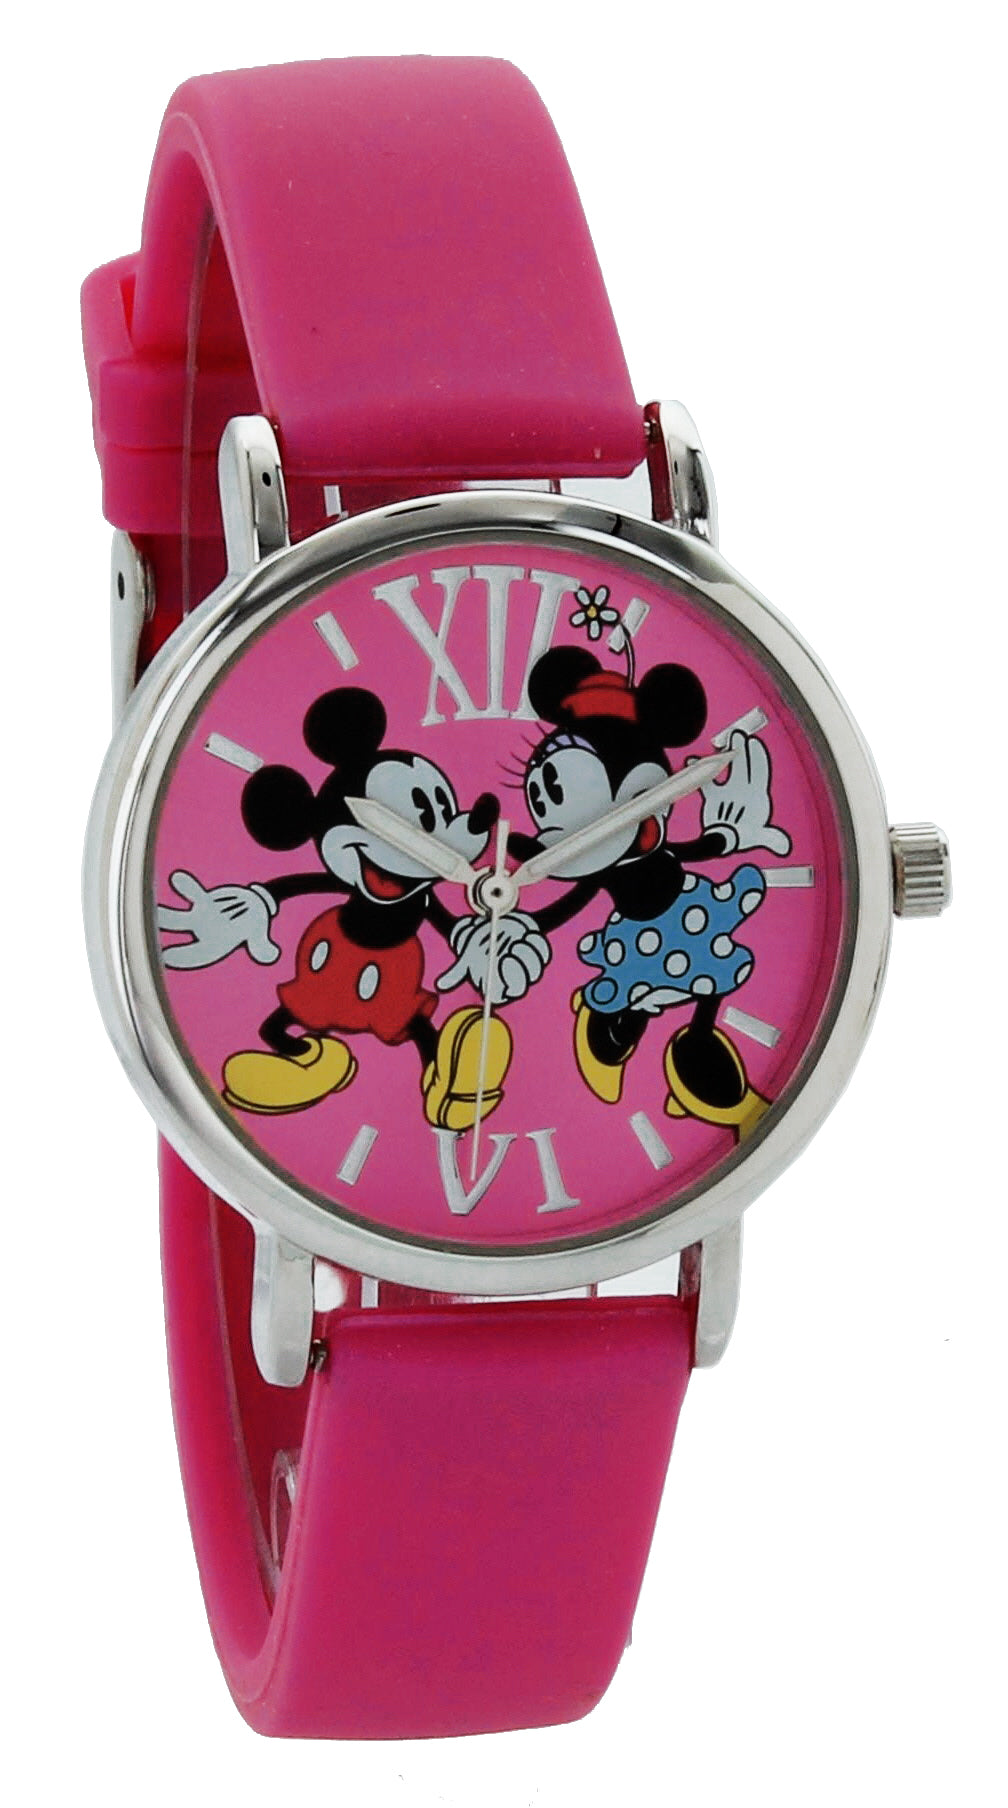 Disney Women's Mini & Mickey Mouse  Dancing Watch W/ Dark Pink Dial & Strap - MN1419DD